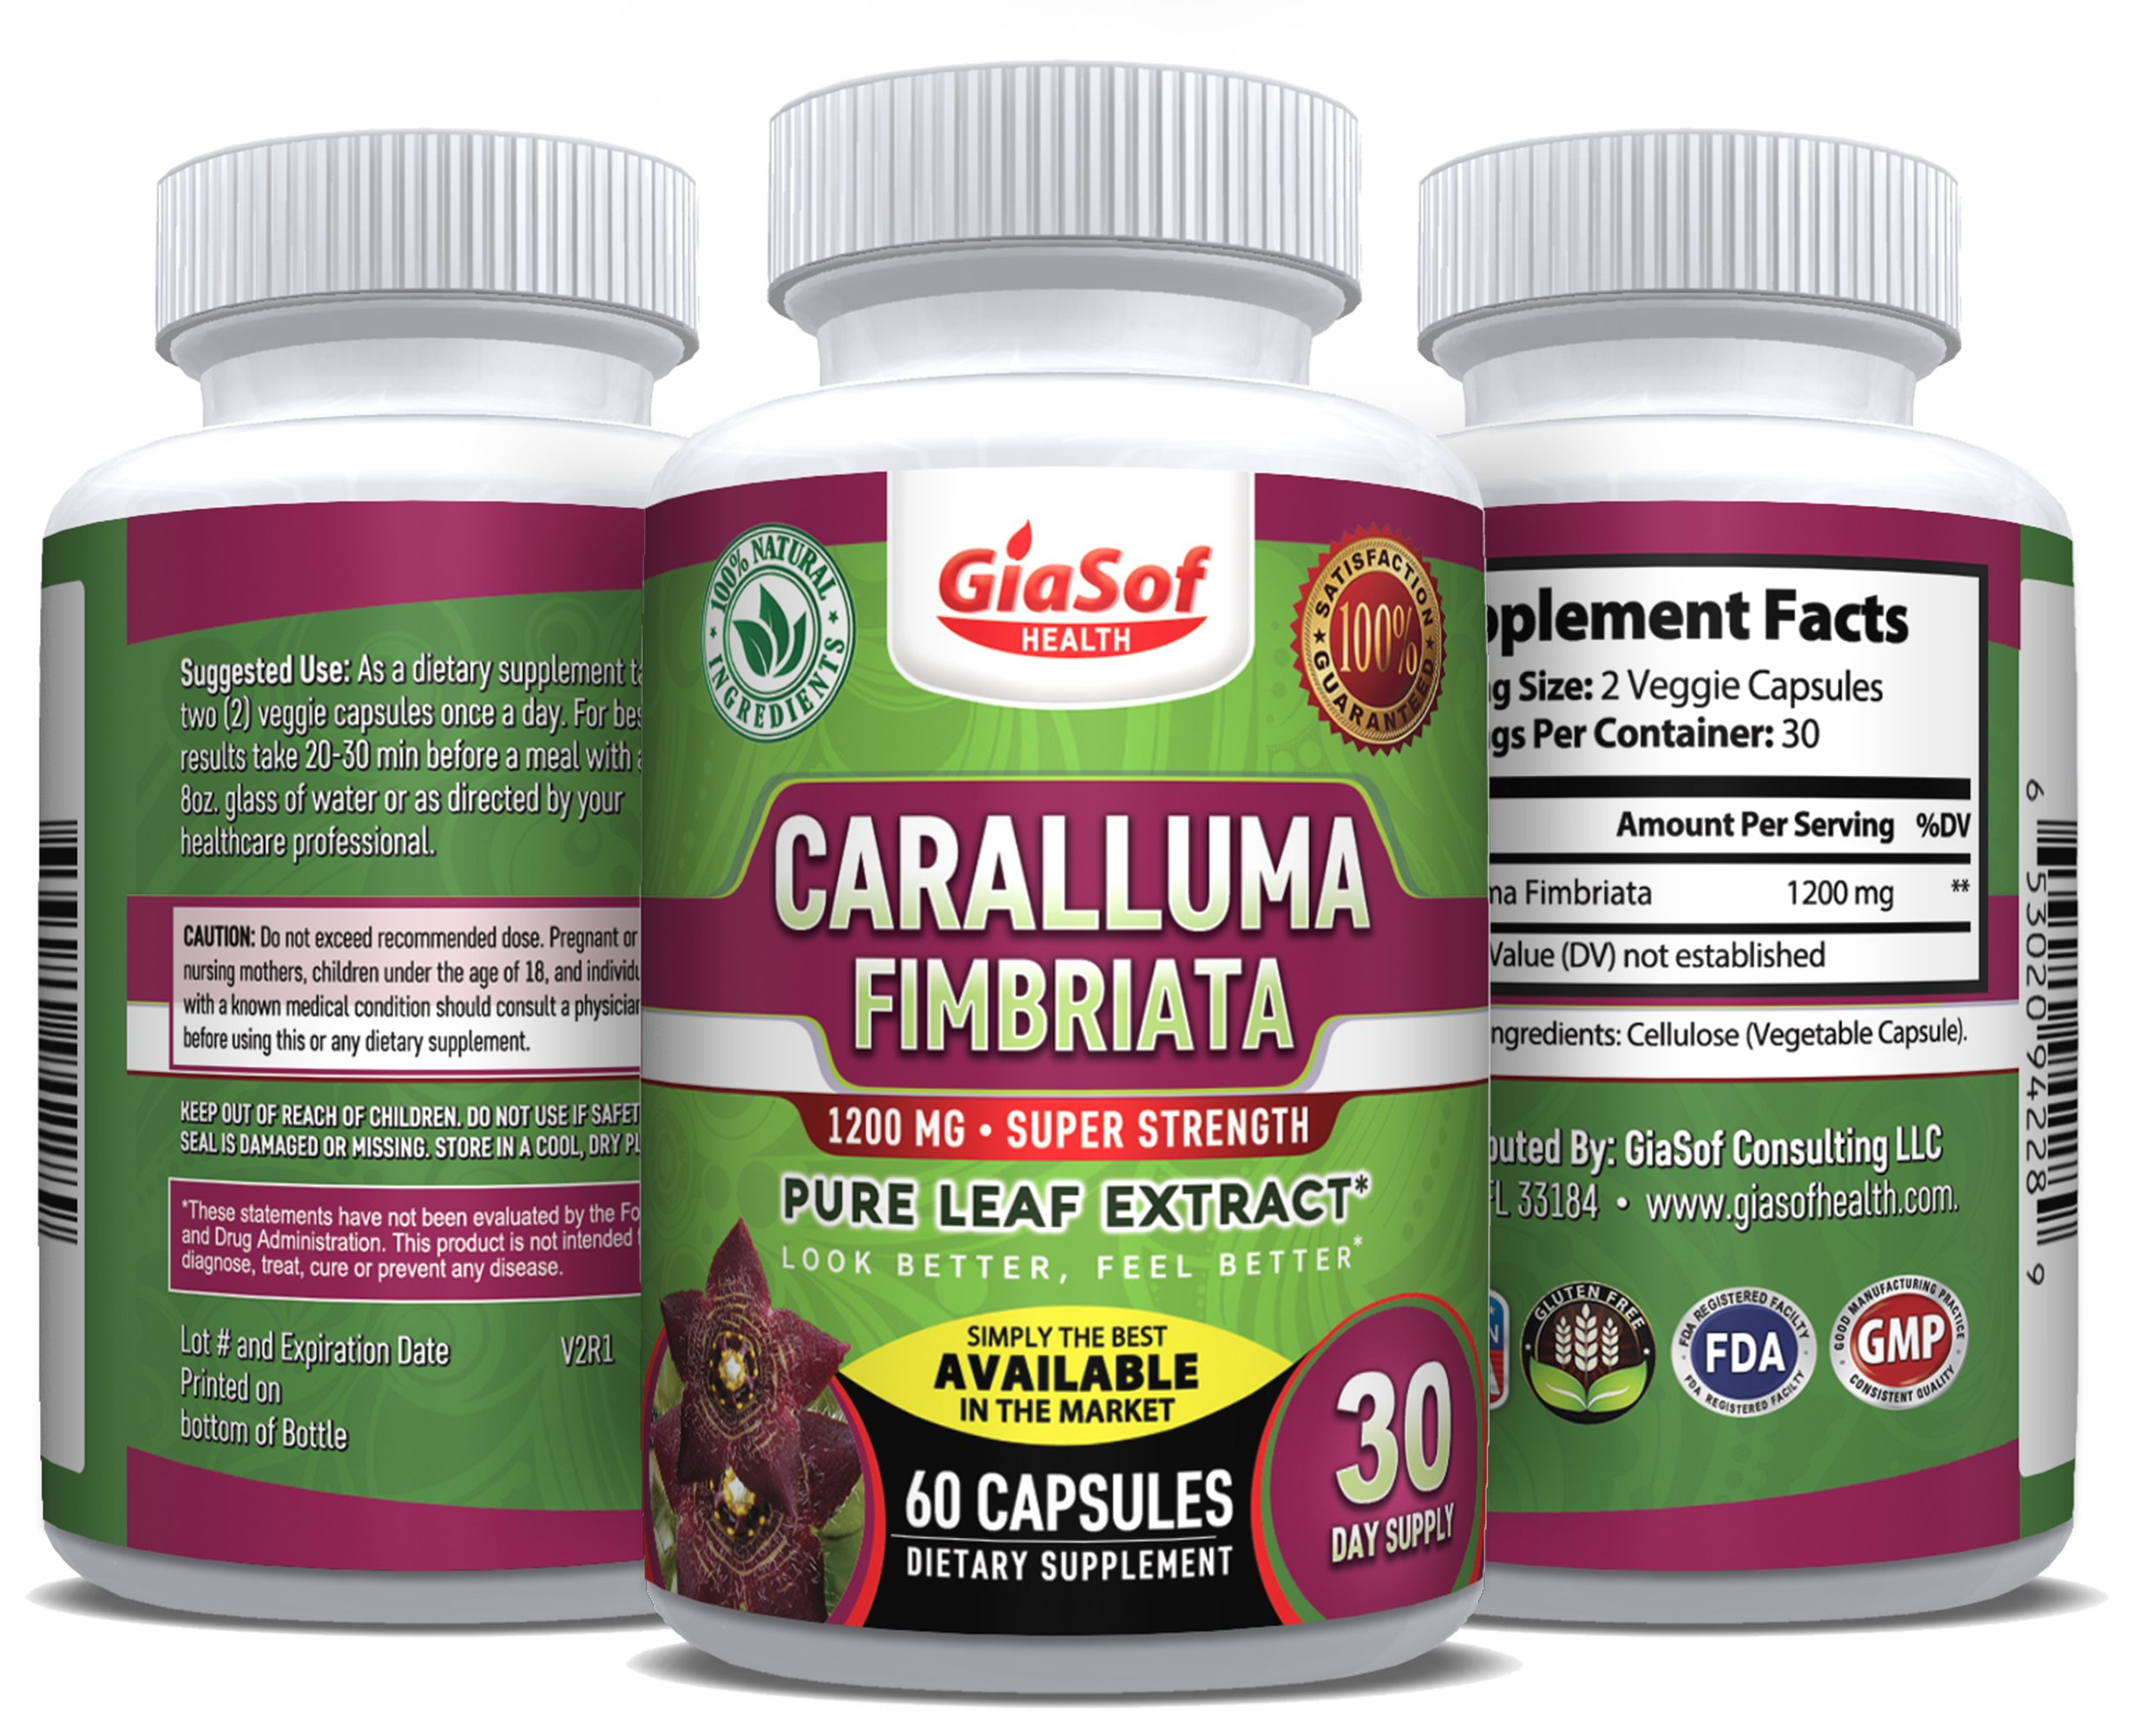 GiaSof Health Caralluma Fimbriata Extract 1200 Mg.Super Strength | Best Weight Loss Pills | Lose Weight Fast | Fat-Carb Blocker| Block Fat Intake | Build Lean Muscle | Free Standard Shipping!